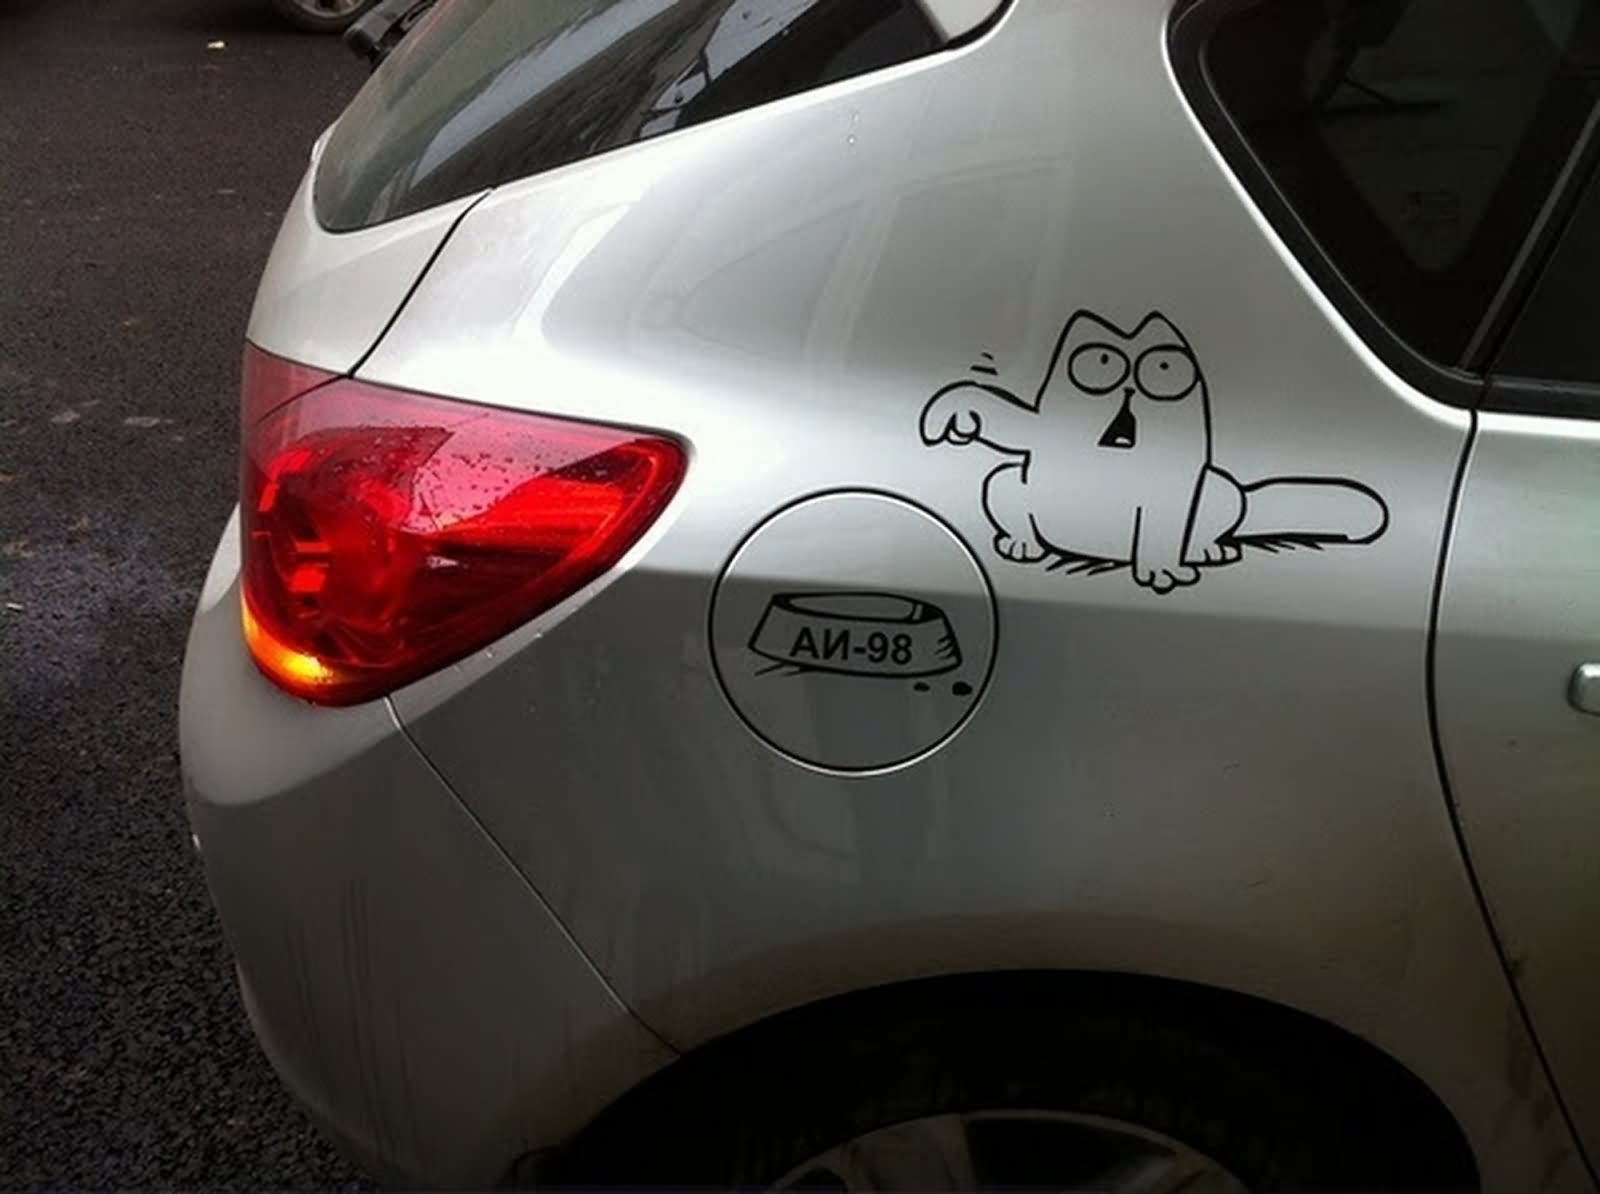 Funny car sticker image